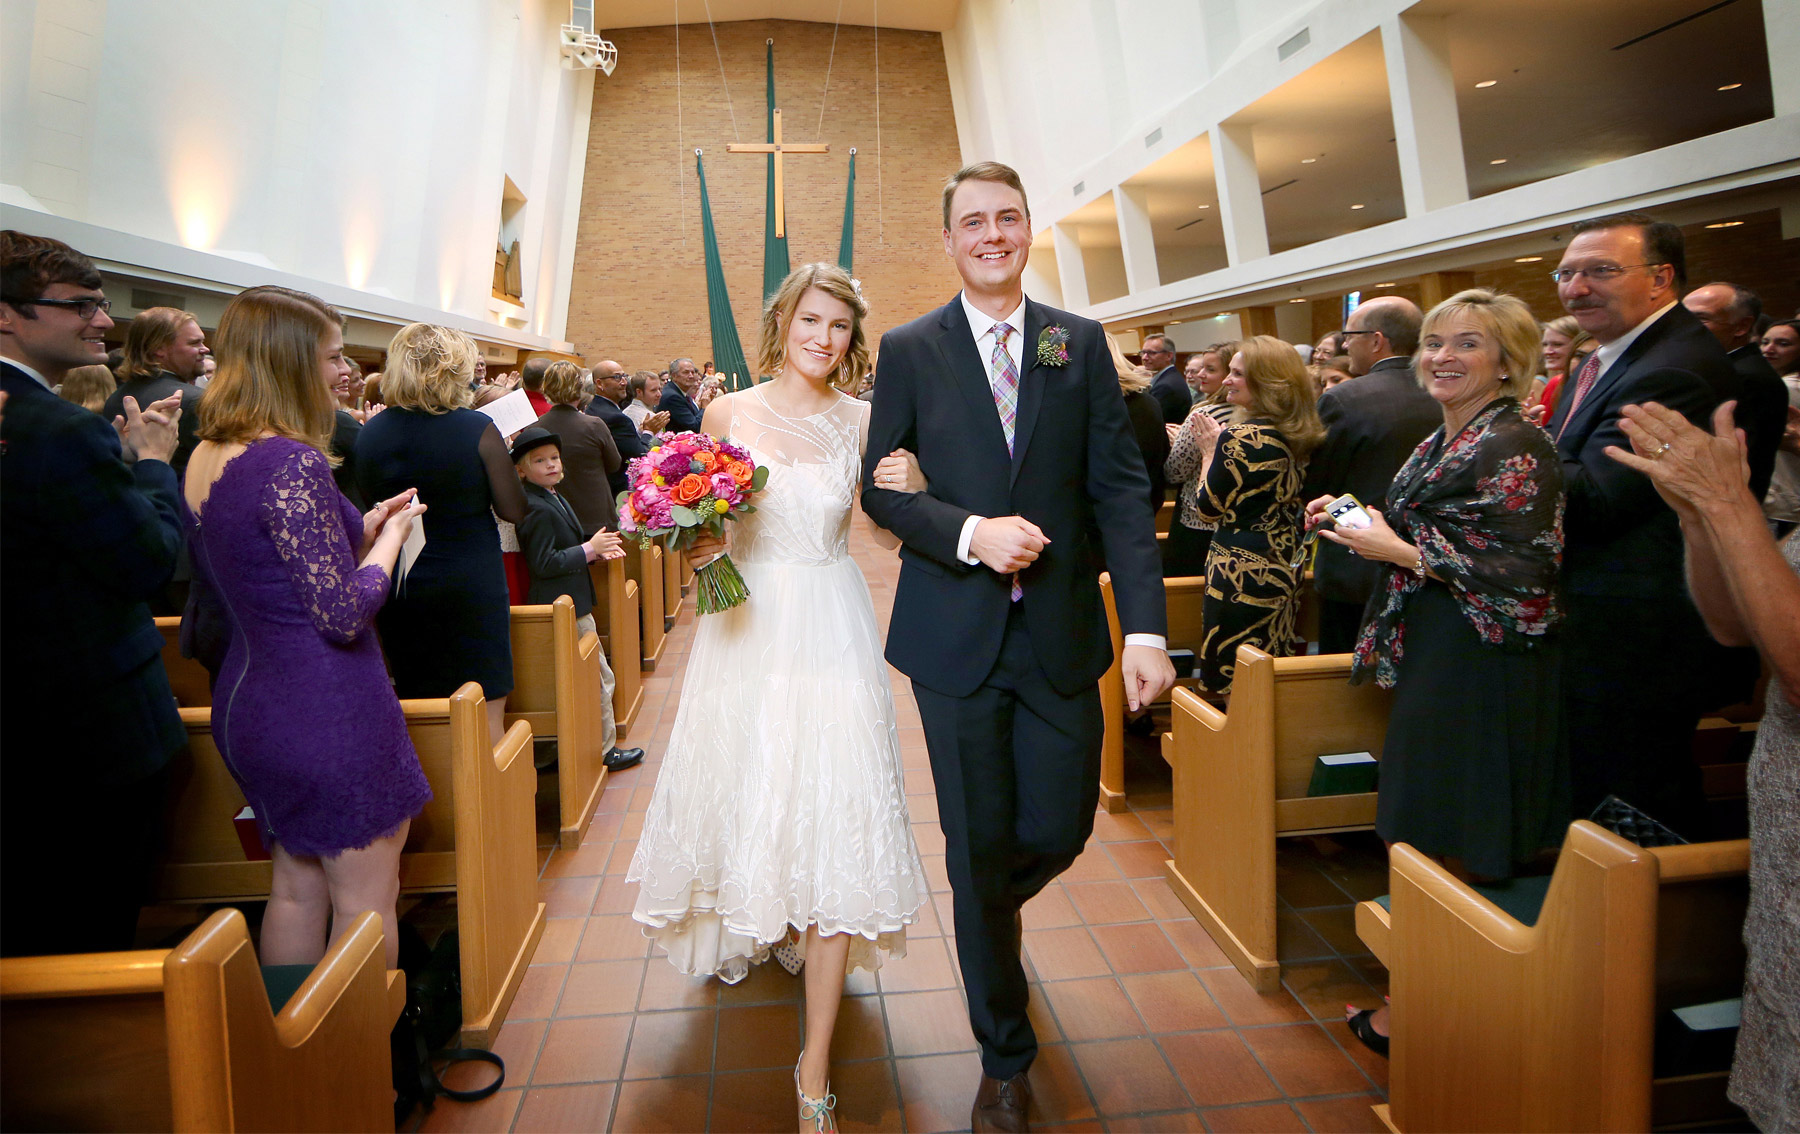 10-Minneapolis-Minnesota-Wedding-Photography-by-Vick-Photography-Normandale-Lutheran-Church-Ceremony-Madeline-&-Matt.jpg